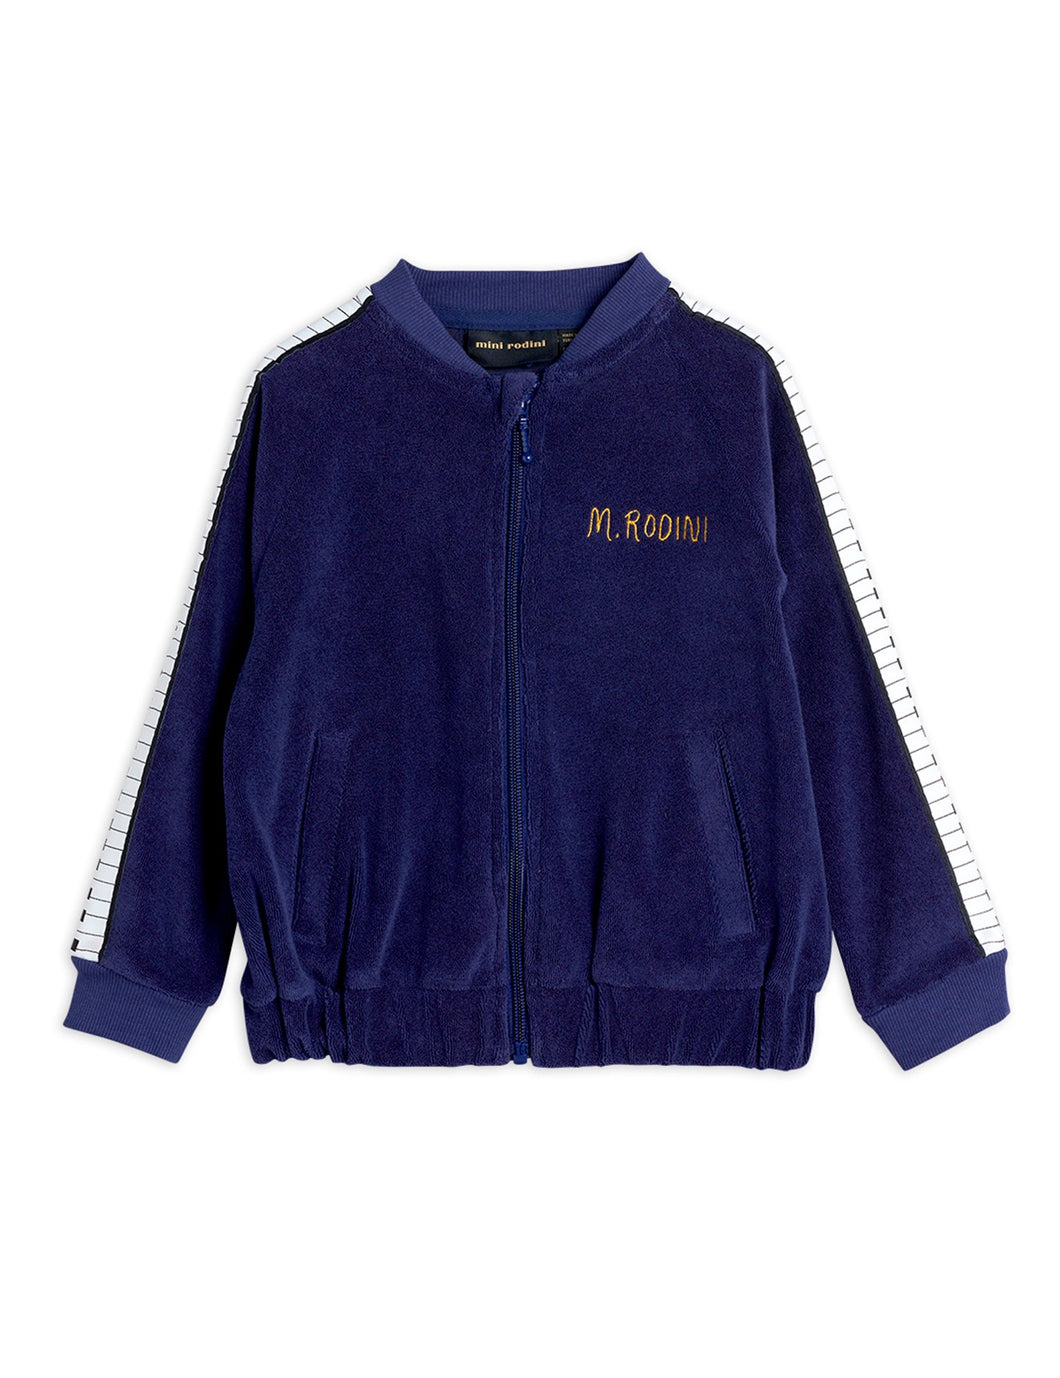 Piano Terry Jacket